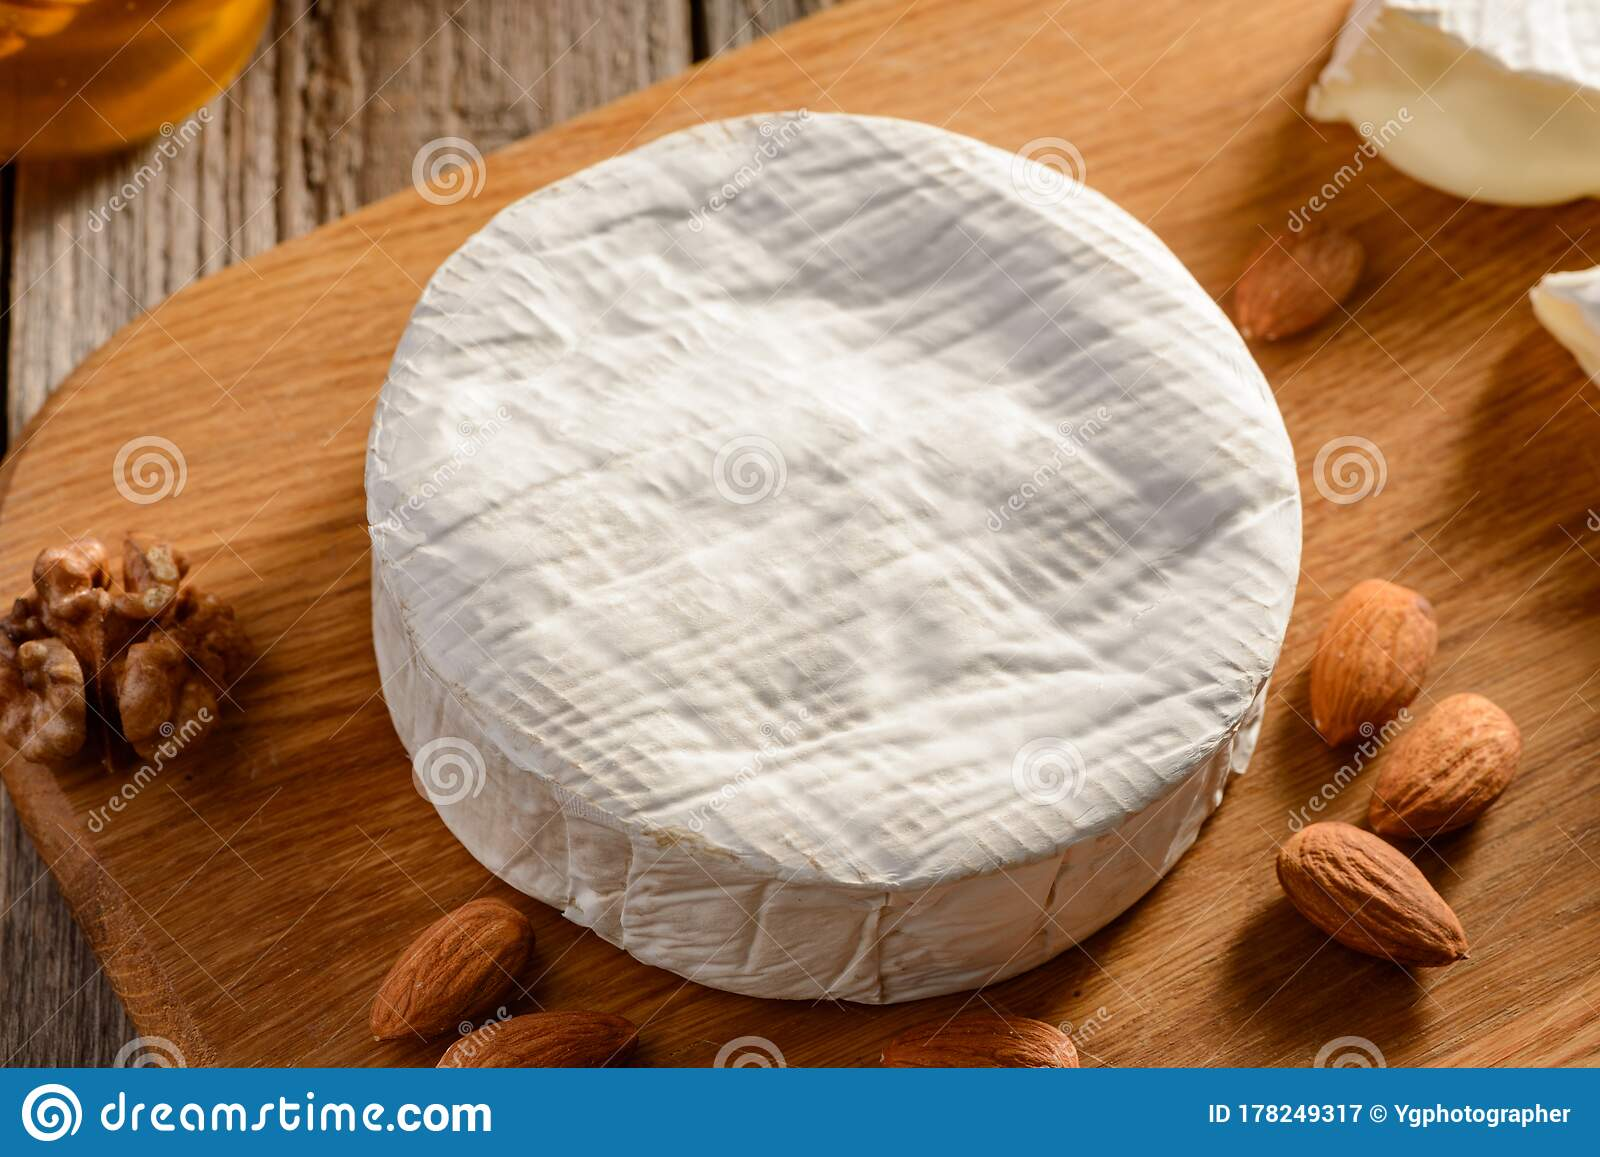 Whole Brie Cheese With White Rind Served With Almonds And Walnuts Stock Image Image Of Dessert Camembert 178249317